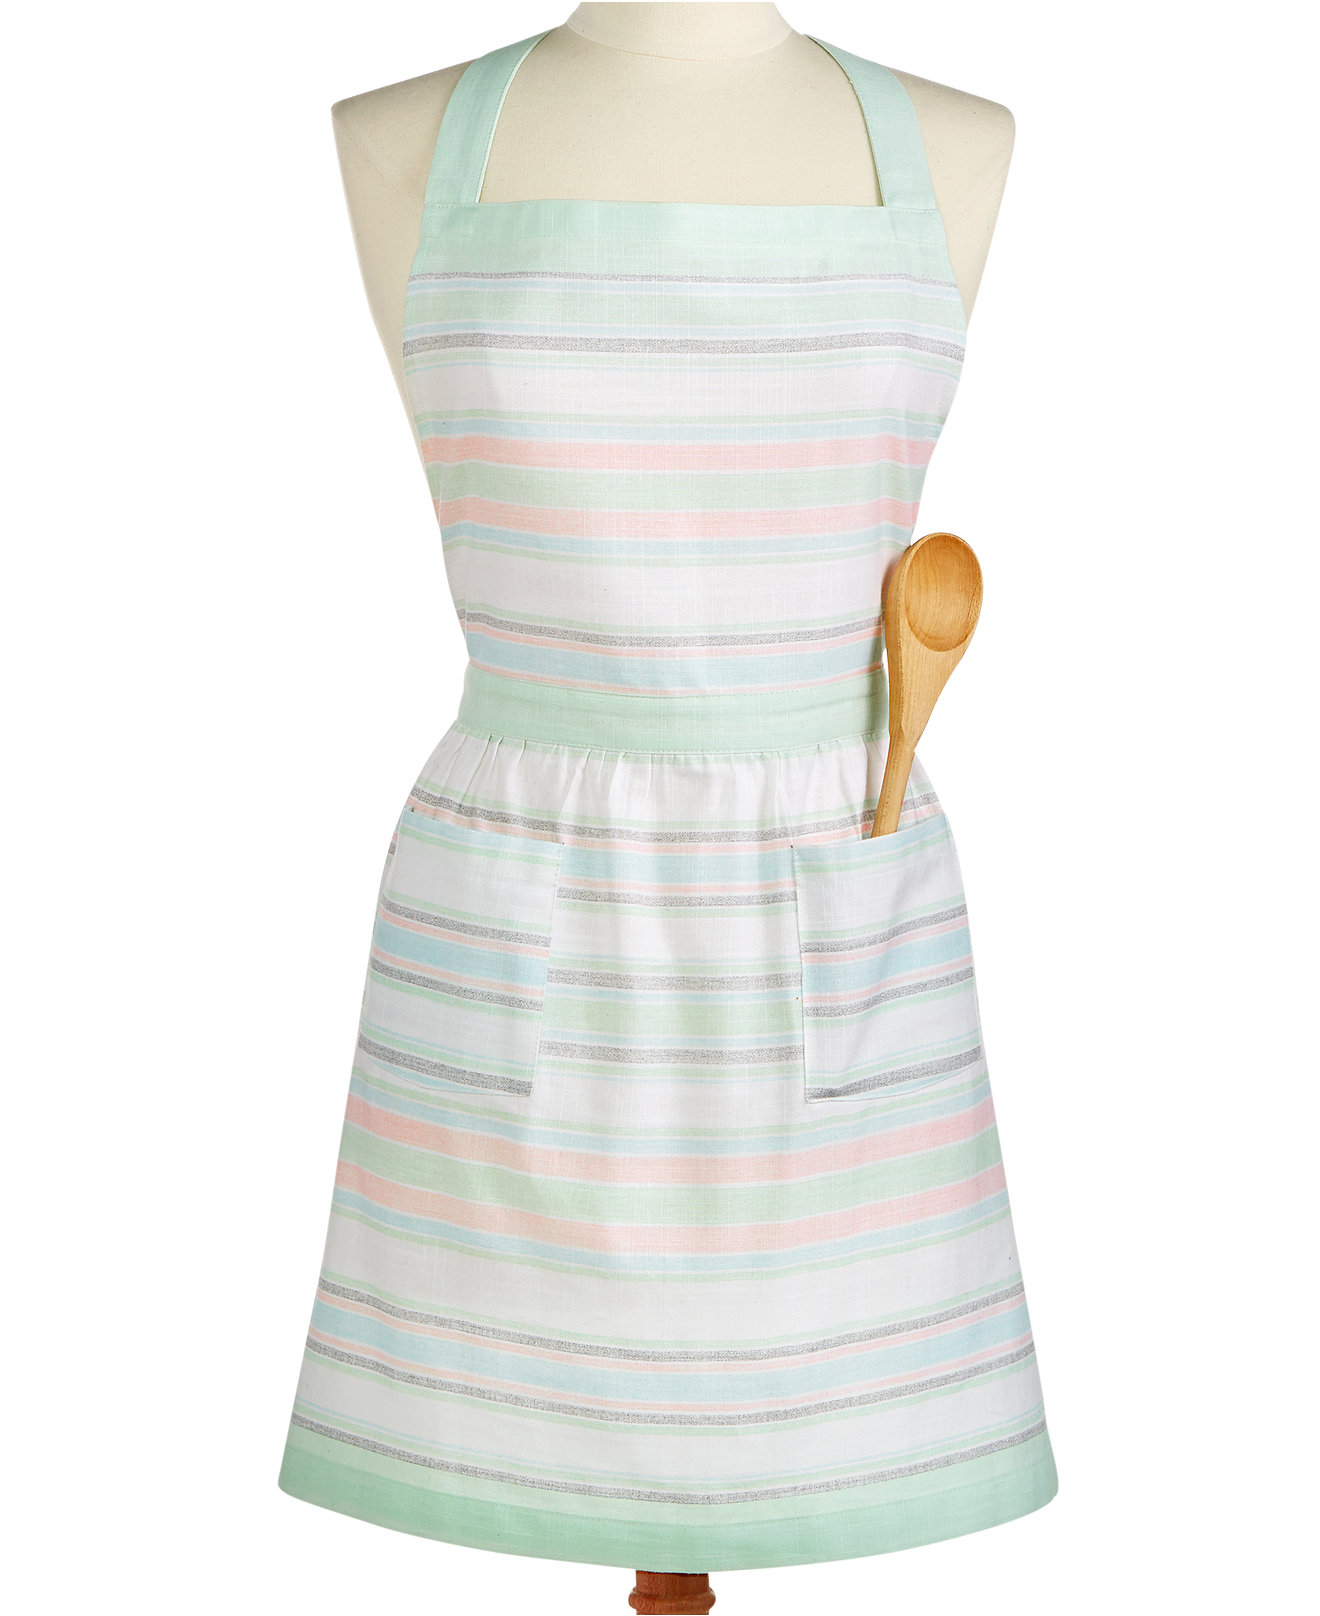 White apron macy's - Martha Stewart Collection Pastel Striped Apron Only At Macy S